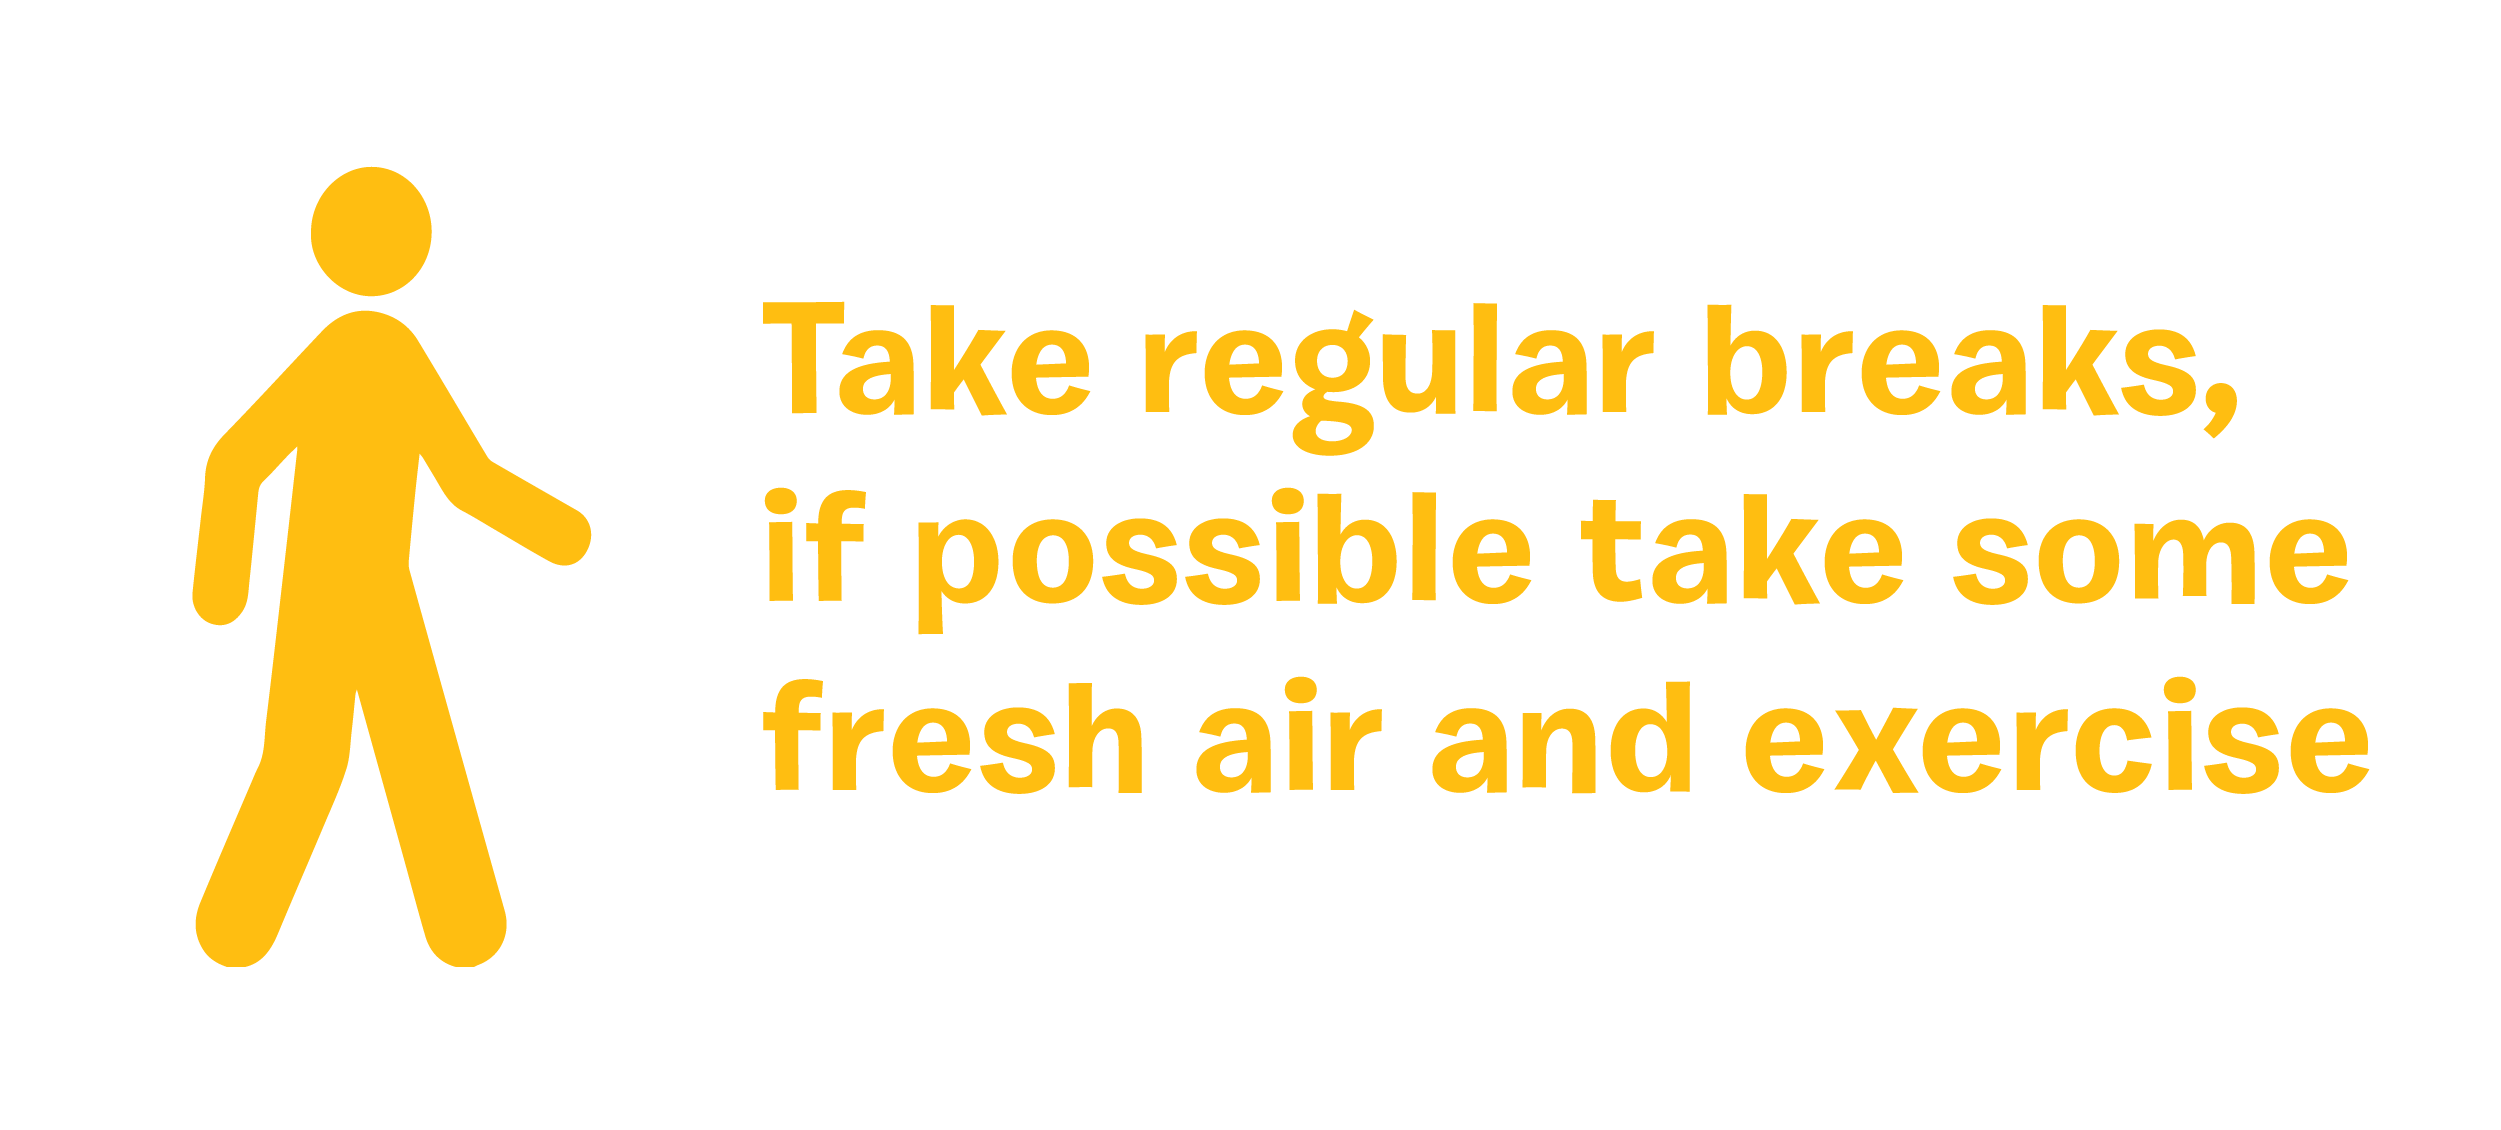 Take regular breaks, if possible take some fresh air and exercise